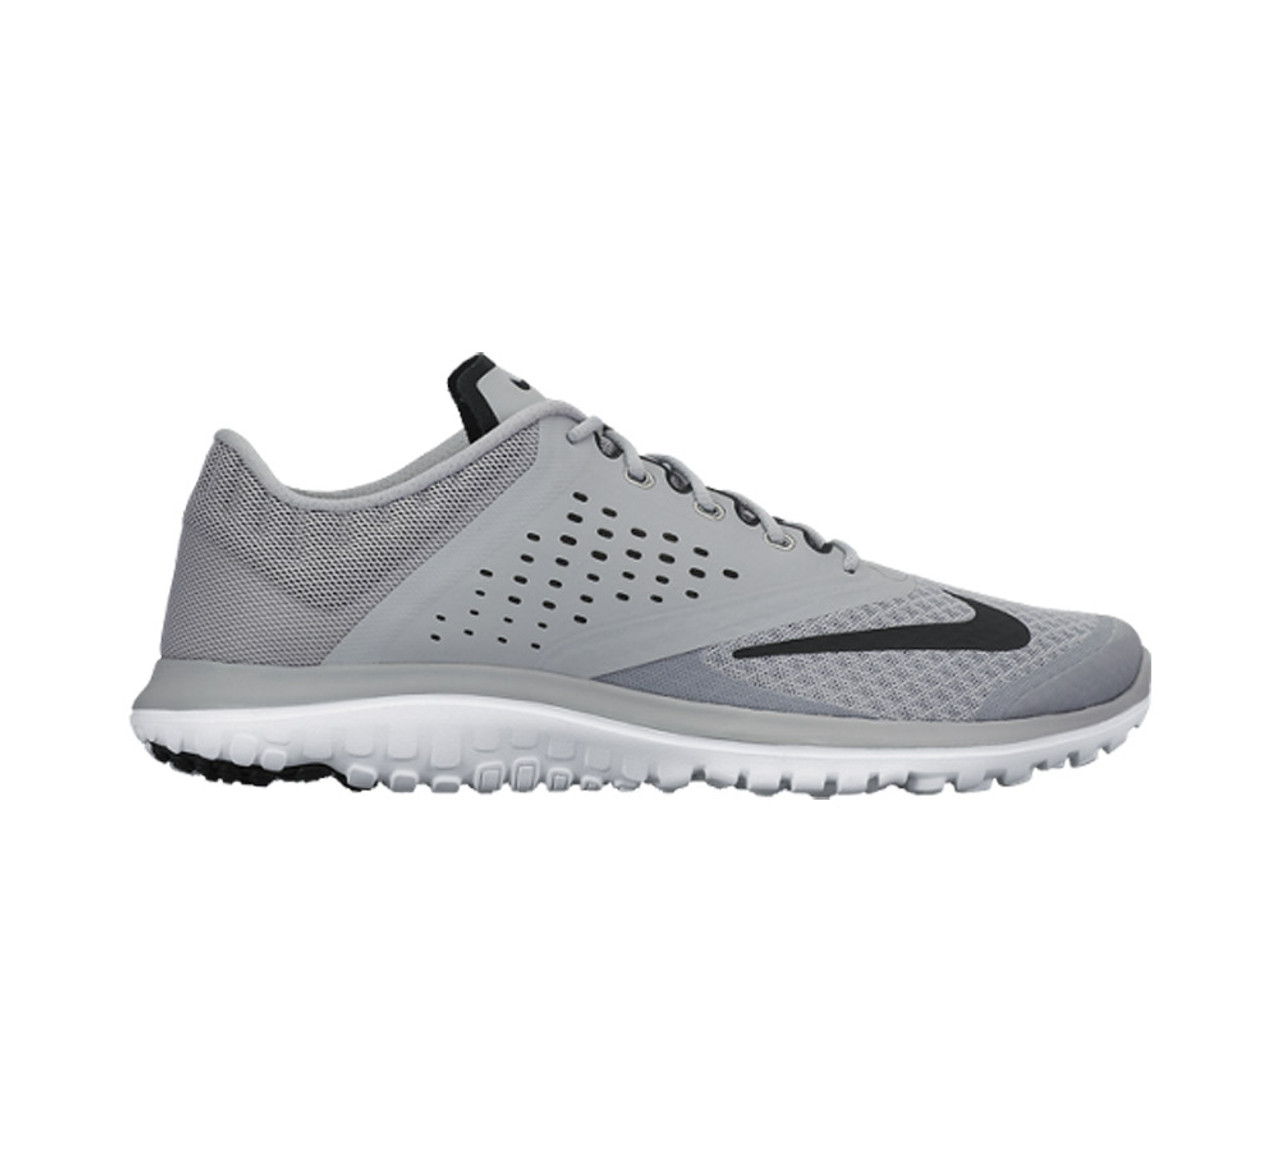 official photos 88e7a e973a New Nike Men's FS Lite Run 2 Running Shoe Grey/Blk